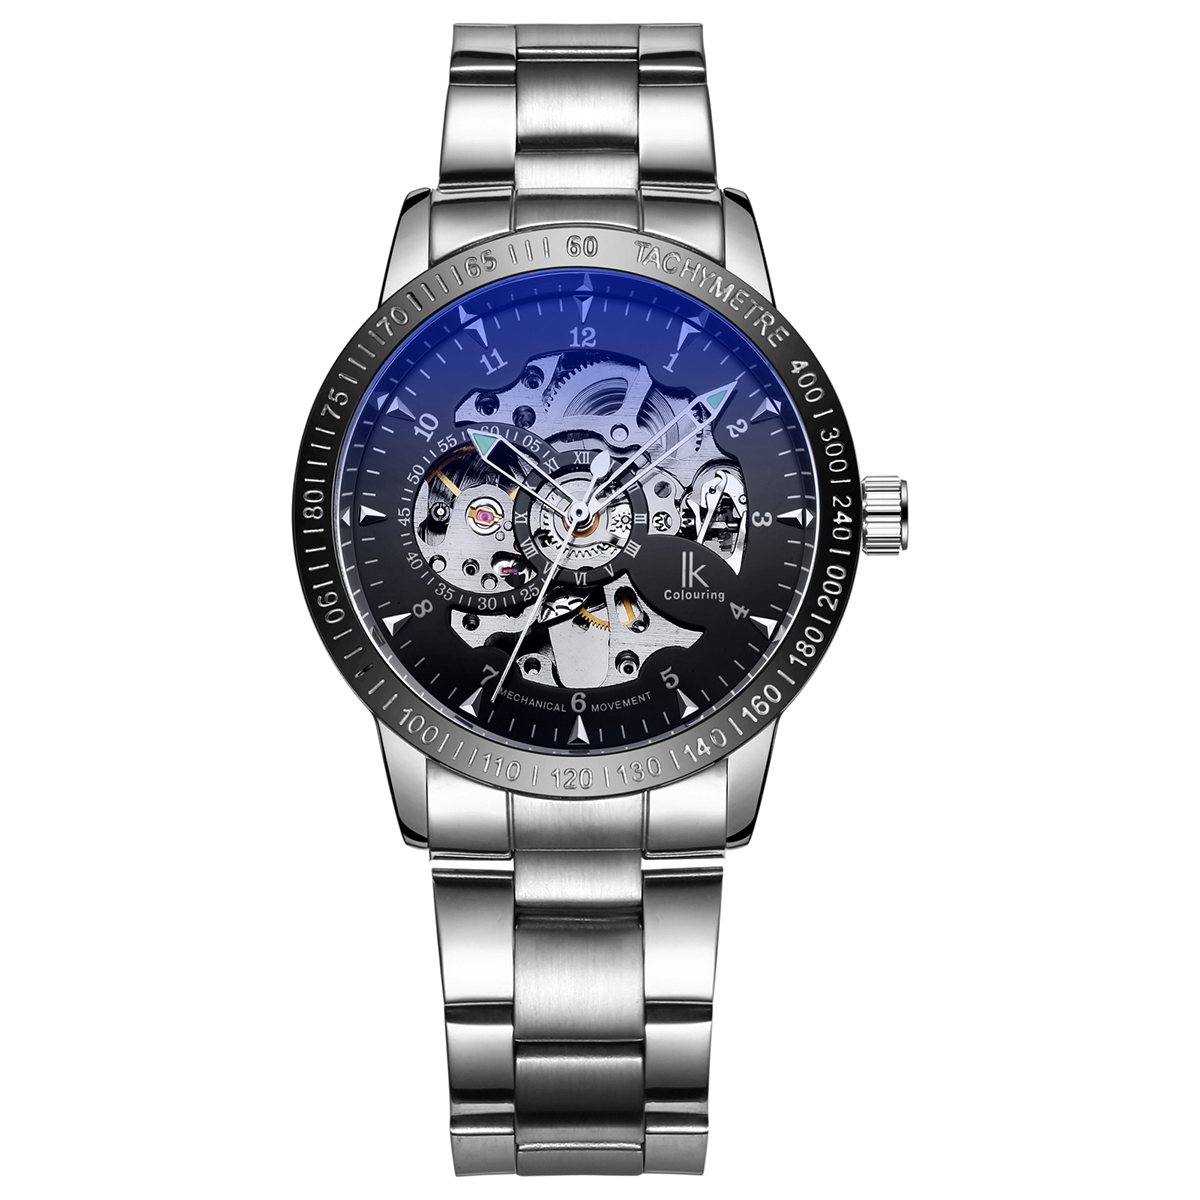 IK colouring Stainless Steel Luminous Automatic Mechanical Watches Men Brand Luxury Transparent Hollow Skeleton Military Watch ik colouring automatic mechanical watch decorative small dials luminous pointer hollow back case stainless steel men wristwatch